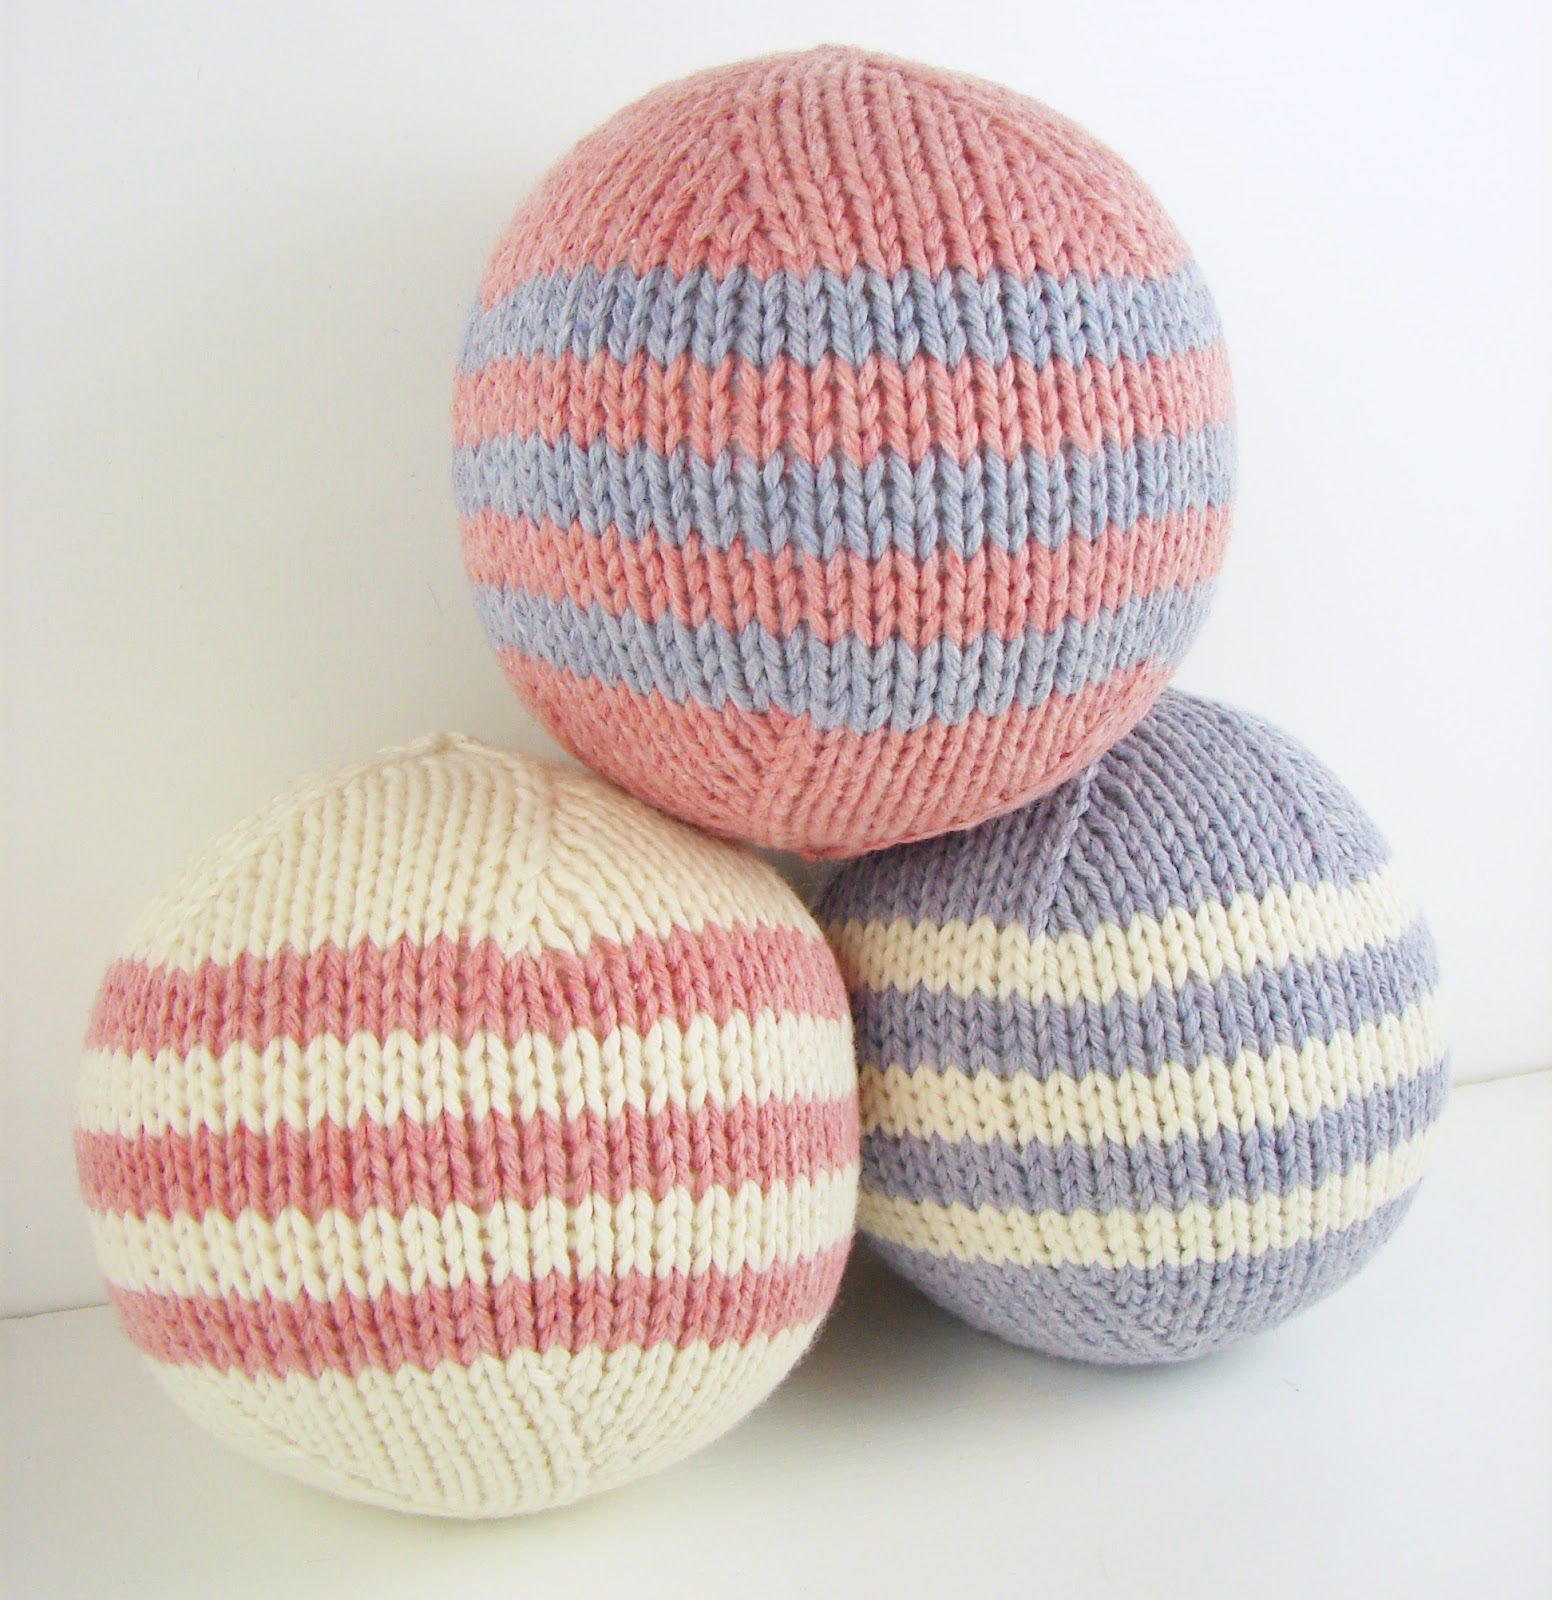 Knitting Patterns For Toy Balls : Auntie Ems Studio: July 2013